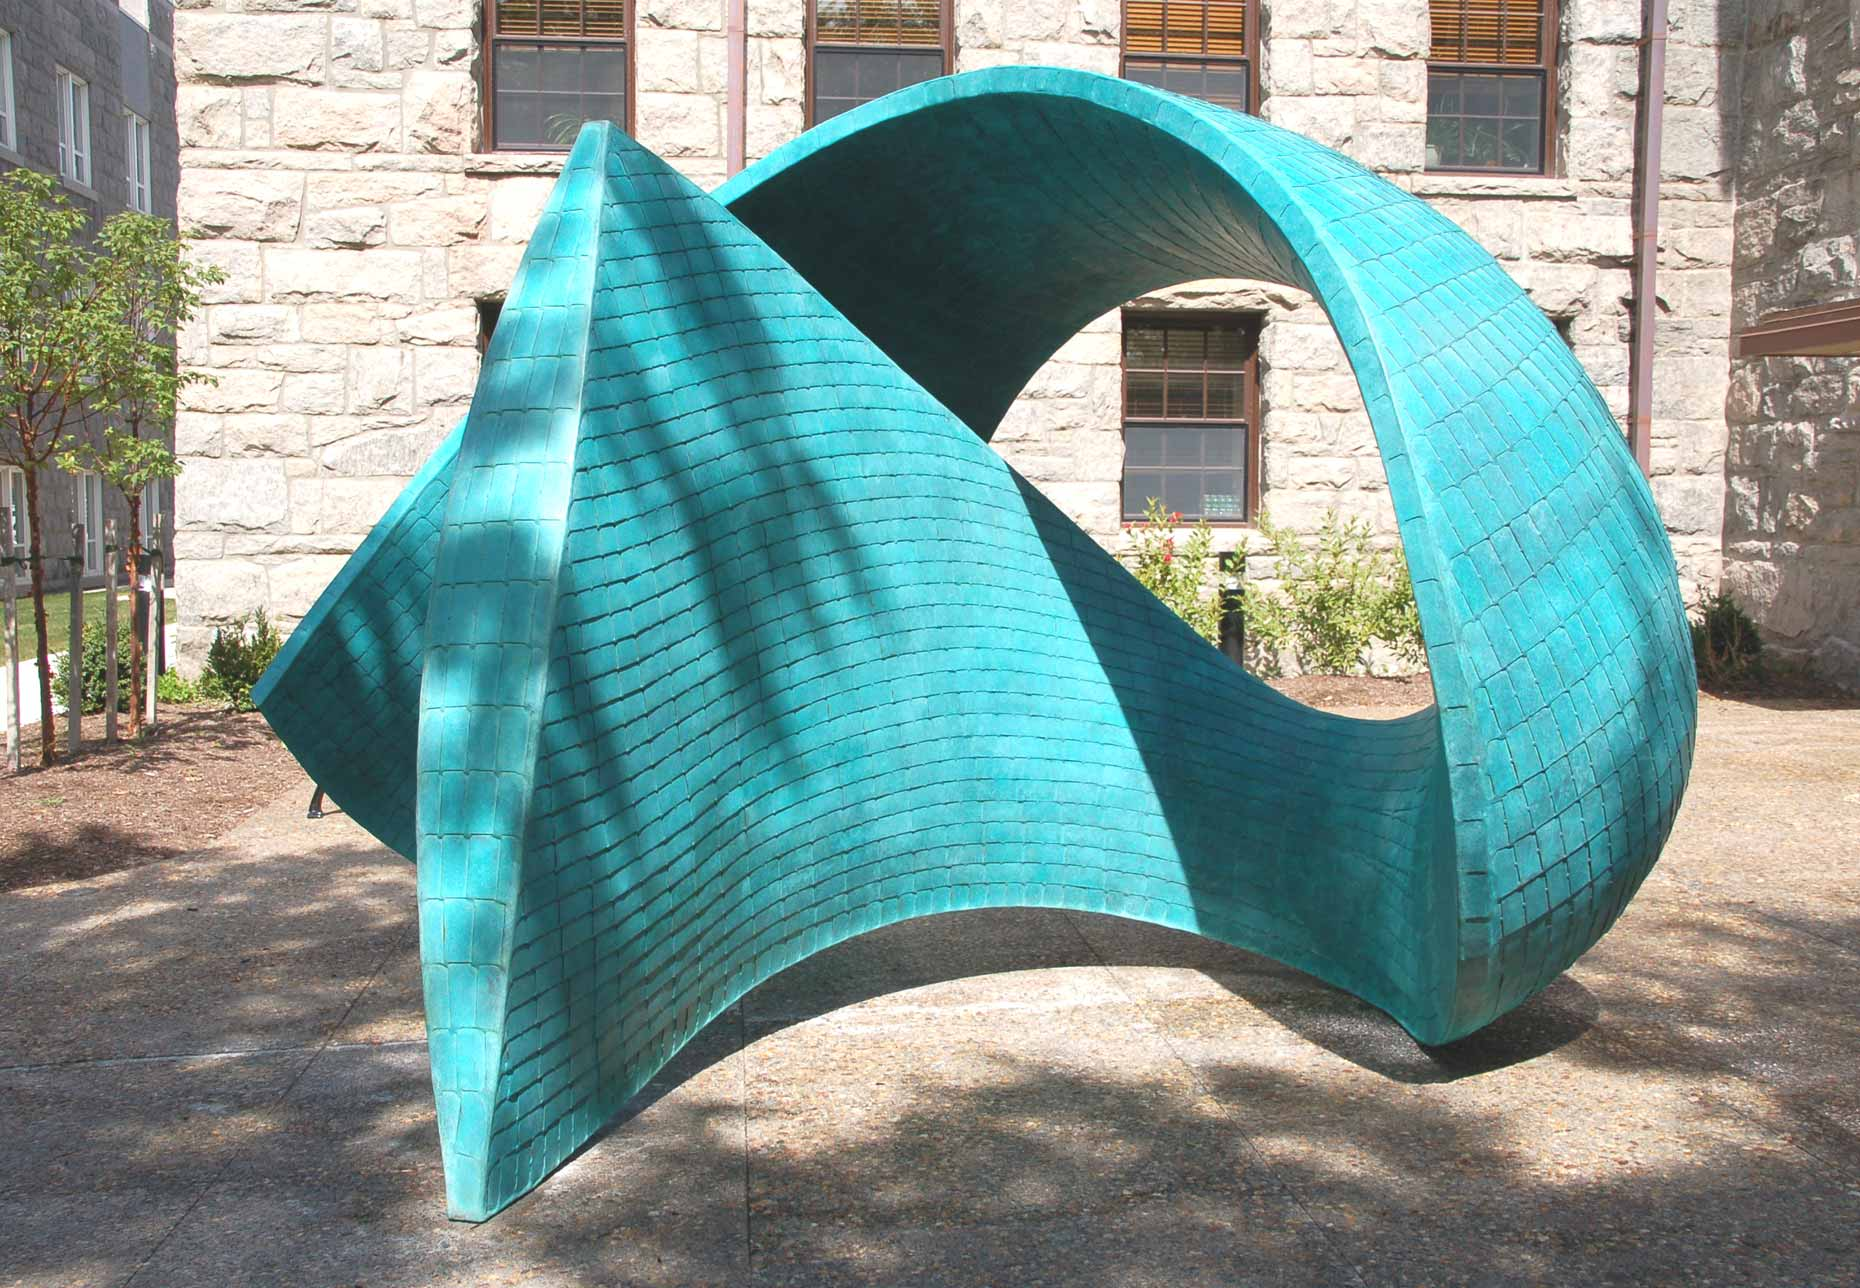 Torsion III a bronze sculpture By Peter Diepenbrock for The University of Rhode Island